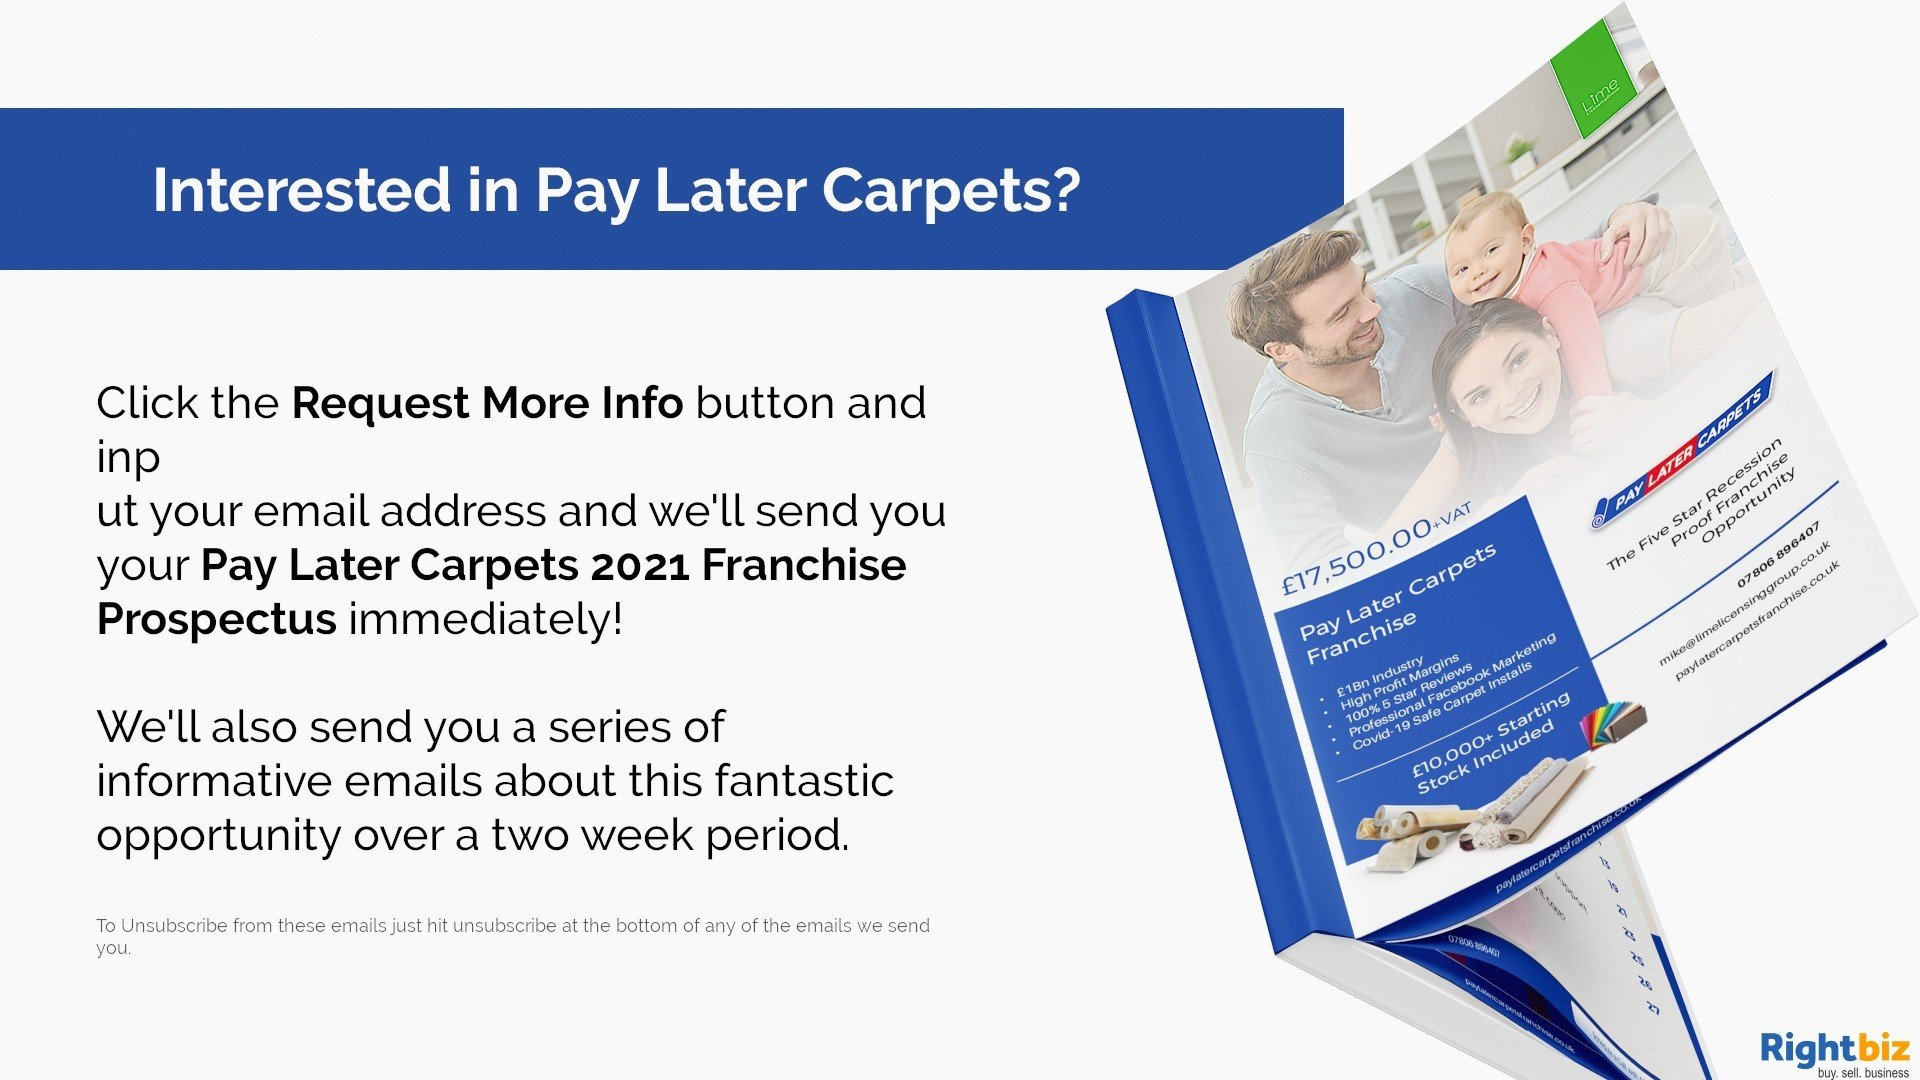 Pay Later Carpets Franchise St Asaph Our First Franchisee Made £11,000+ Profit in Month One - Image 6